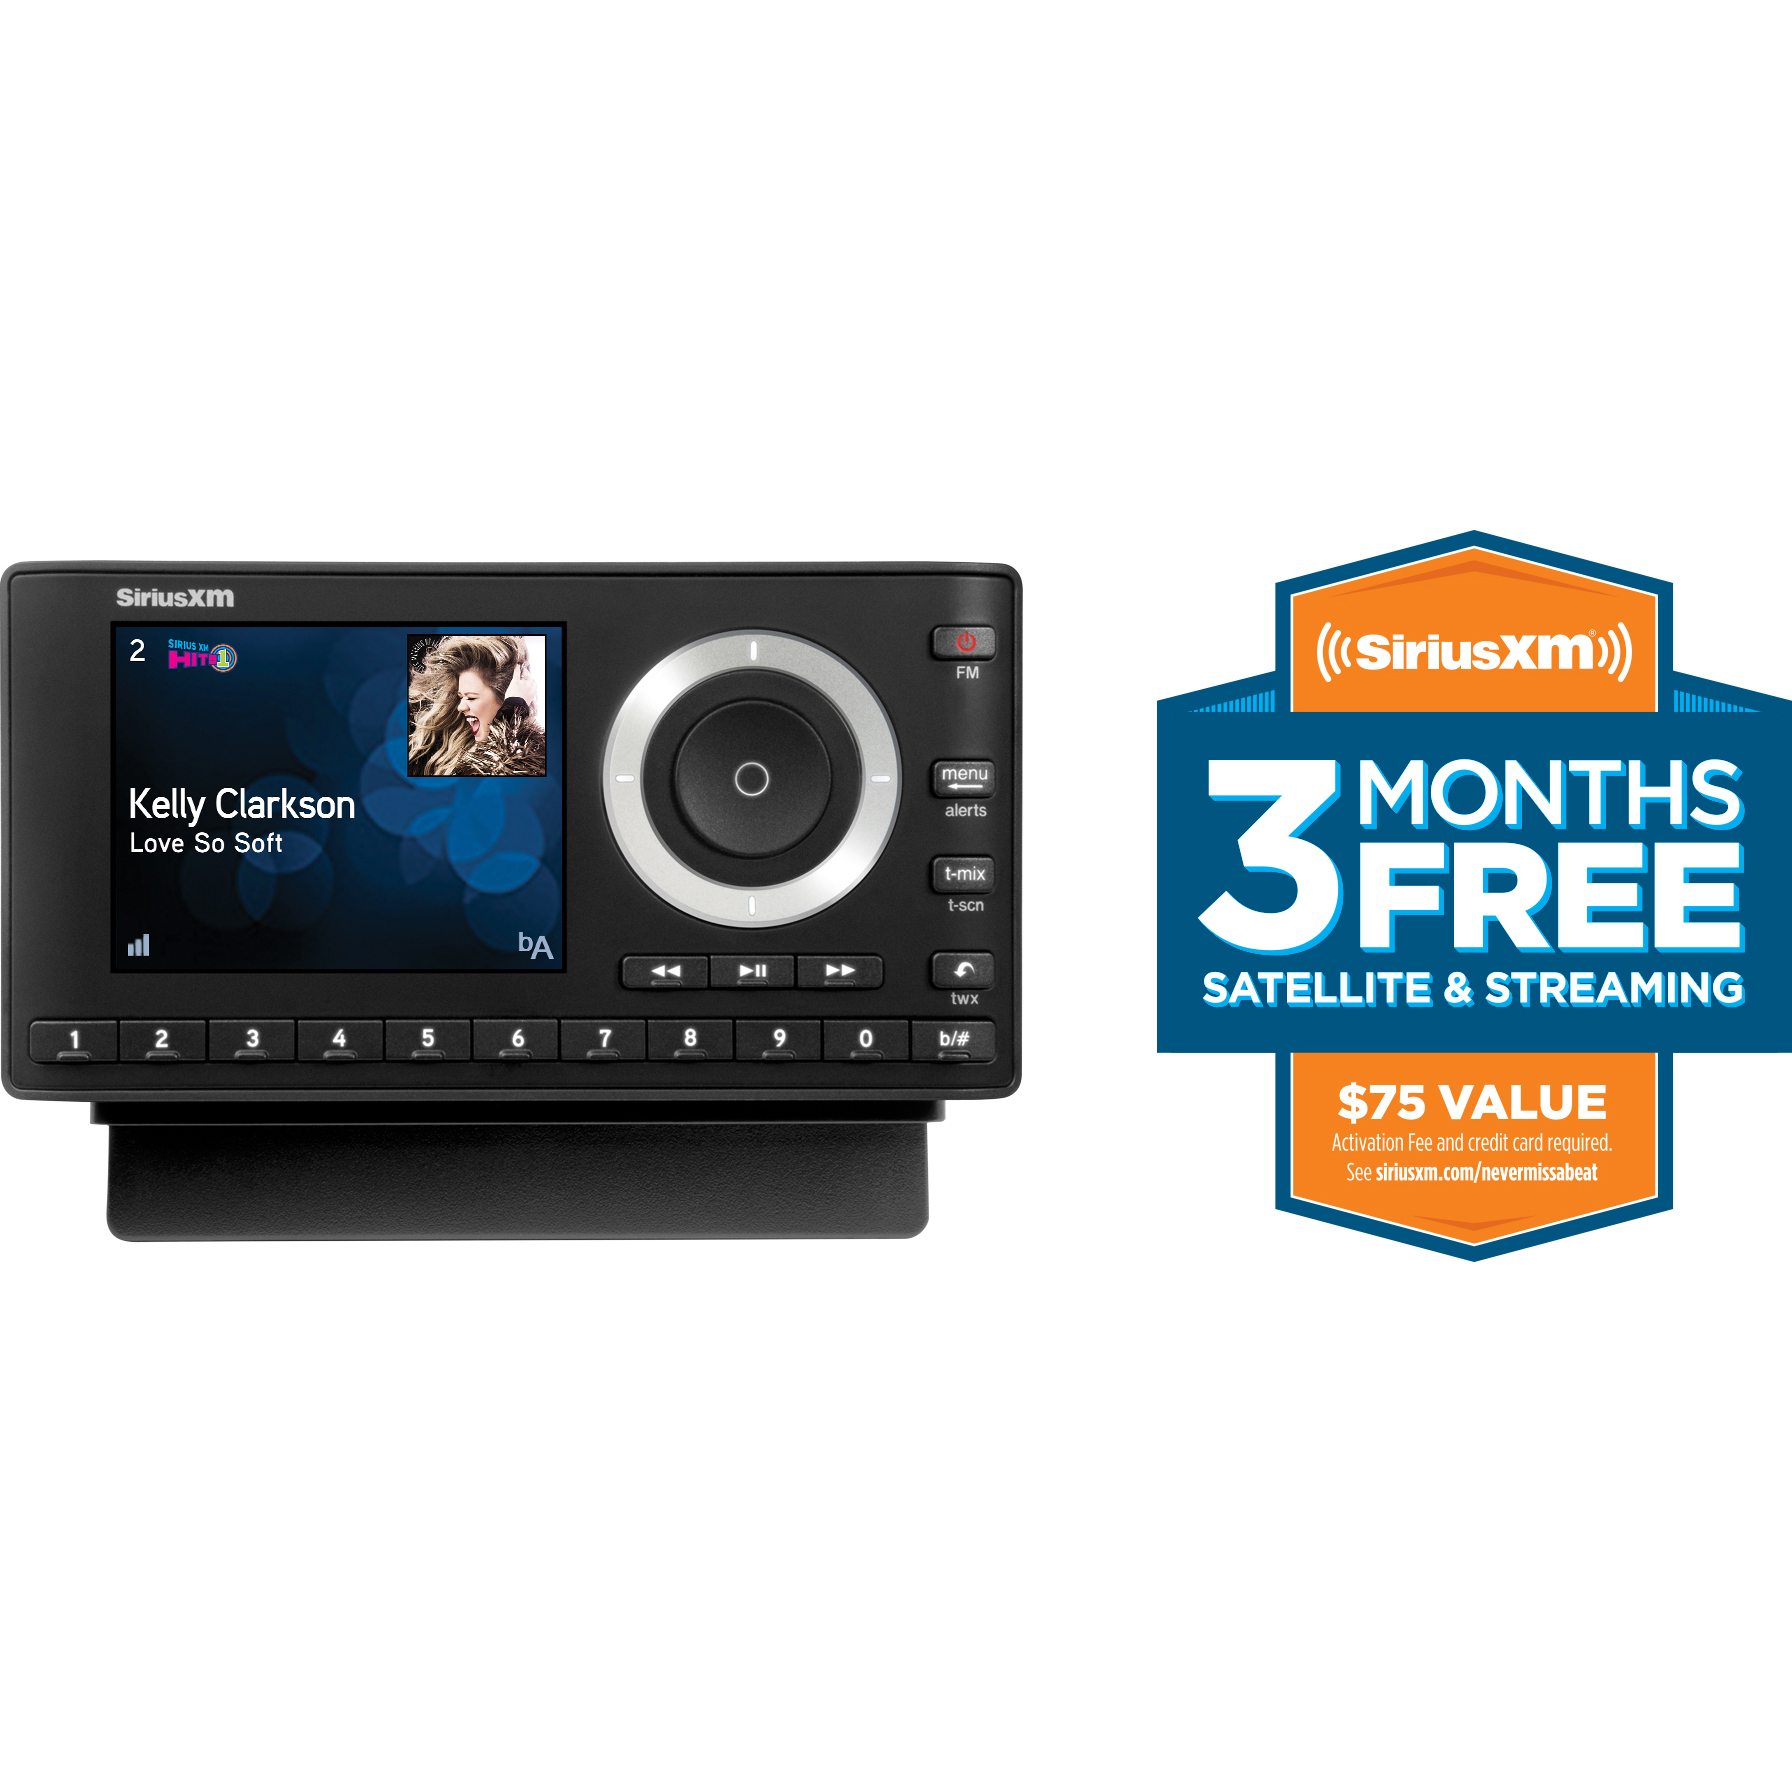 SiriusXM SXPL1V1 Onyx Plus Satellite Radio with Vehicle Kit with Free 3 Months Satellite and Streaming Service